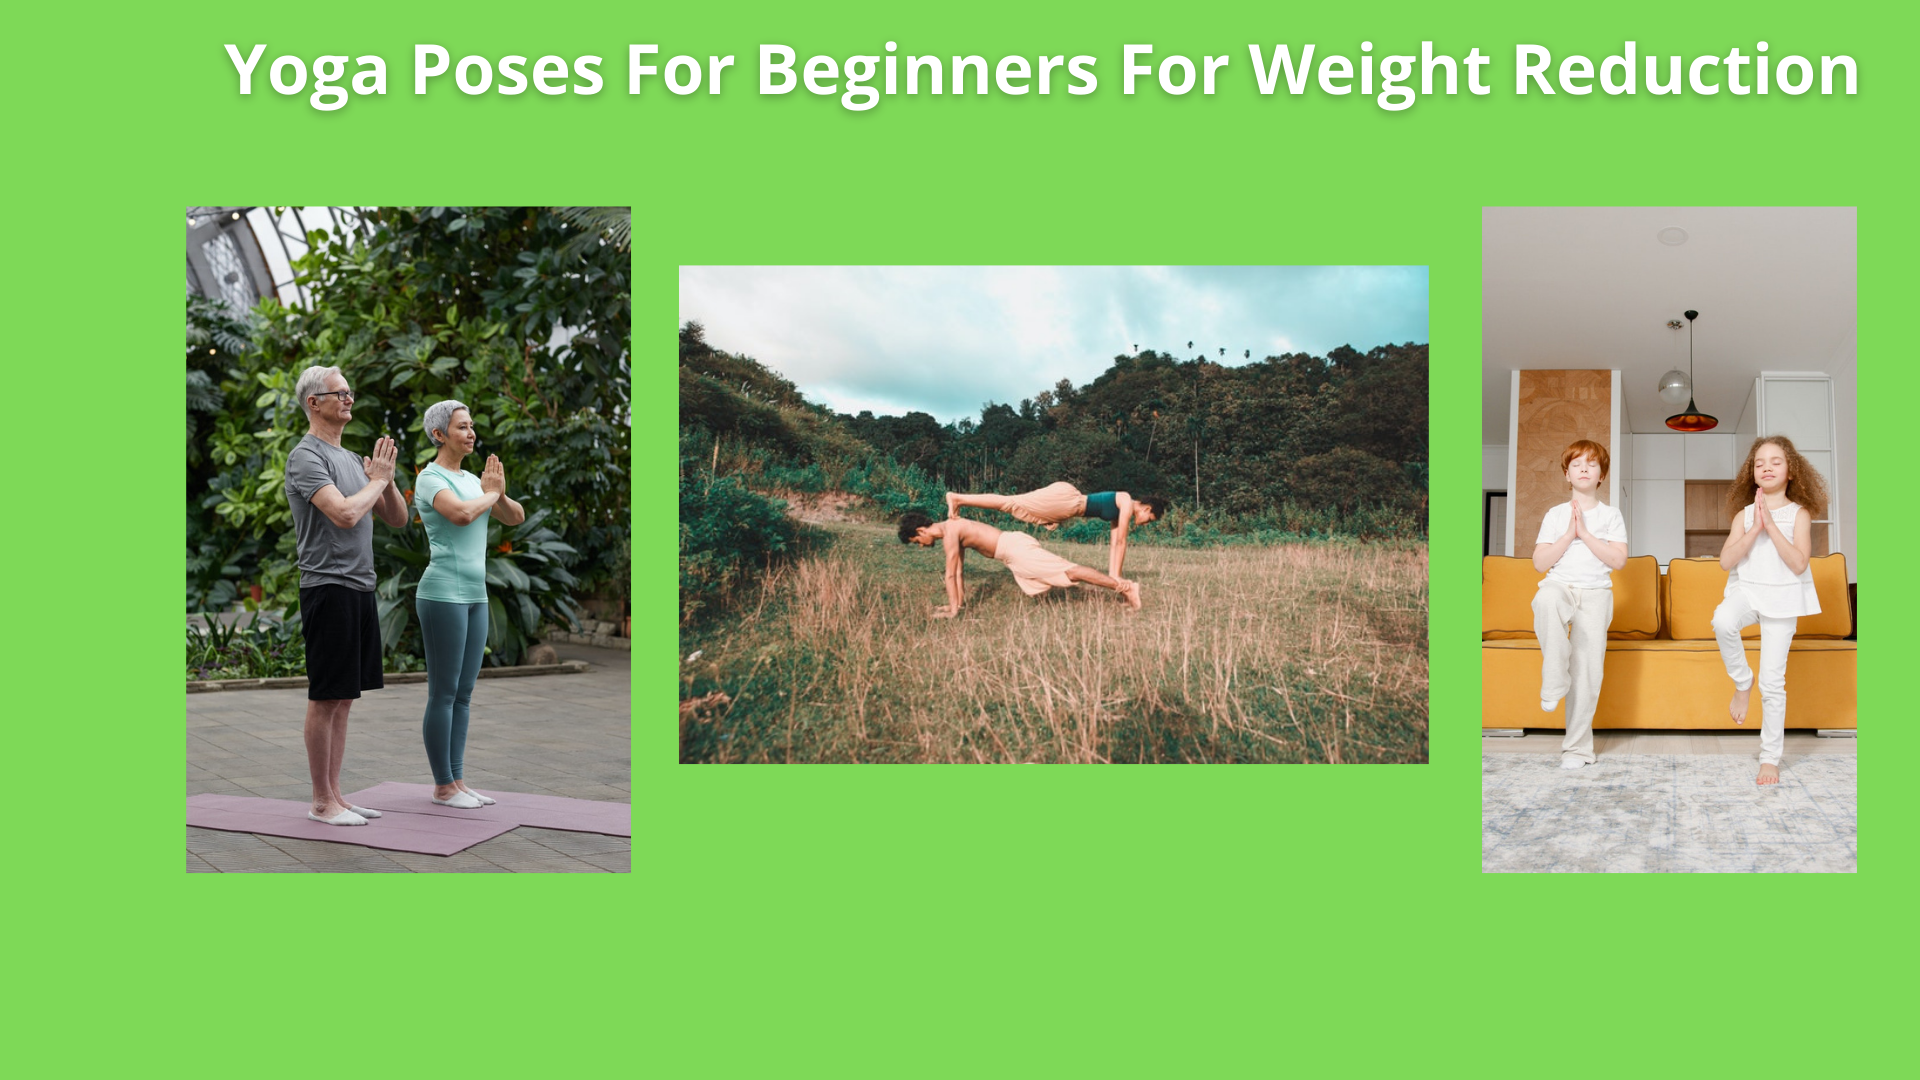 'Yoga Poses For Beginners For Weight Reduction'